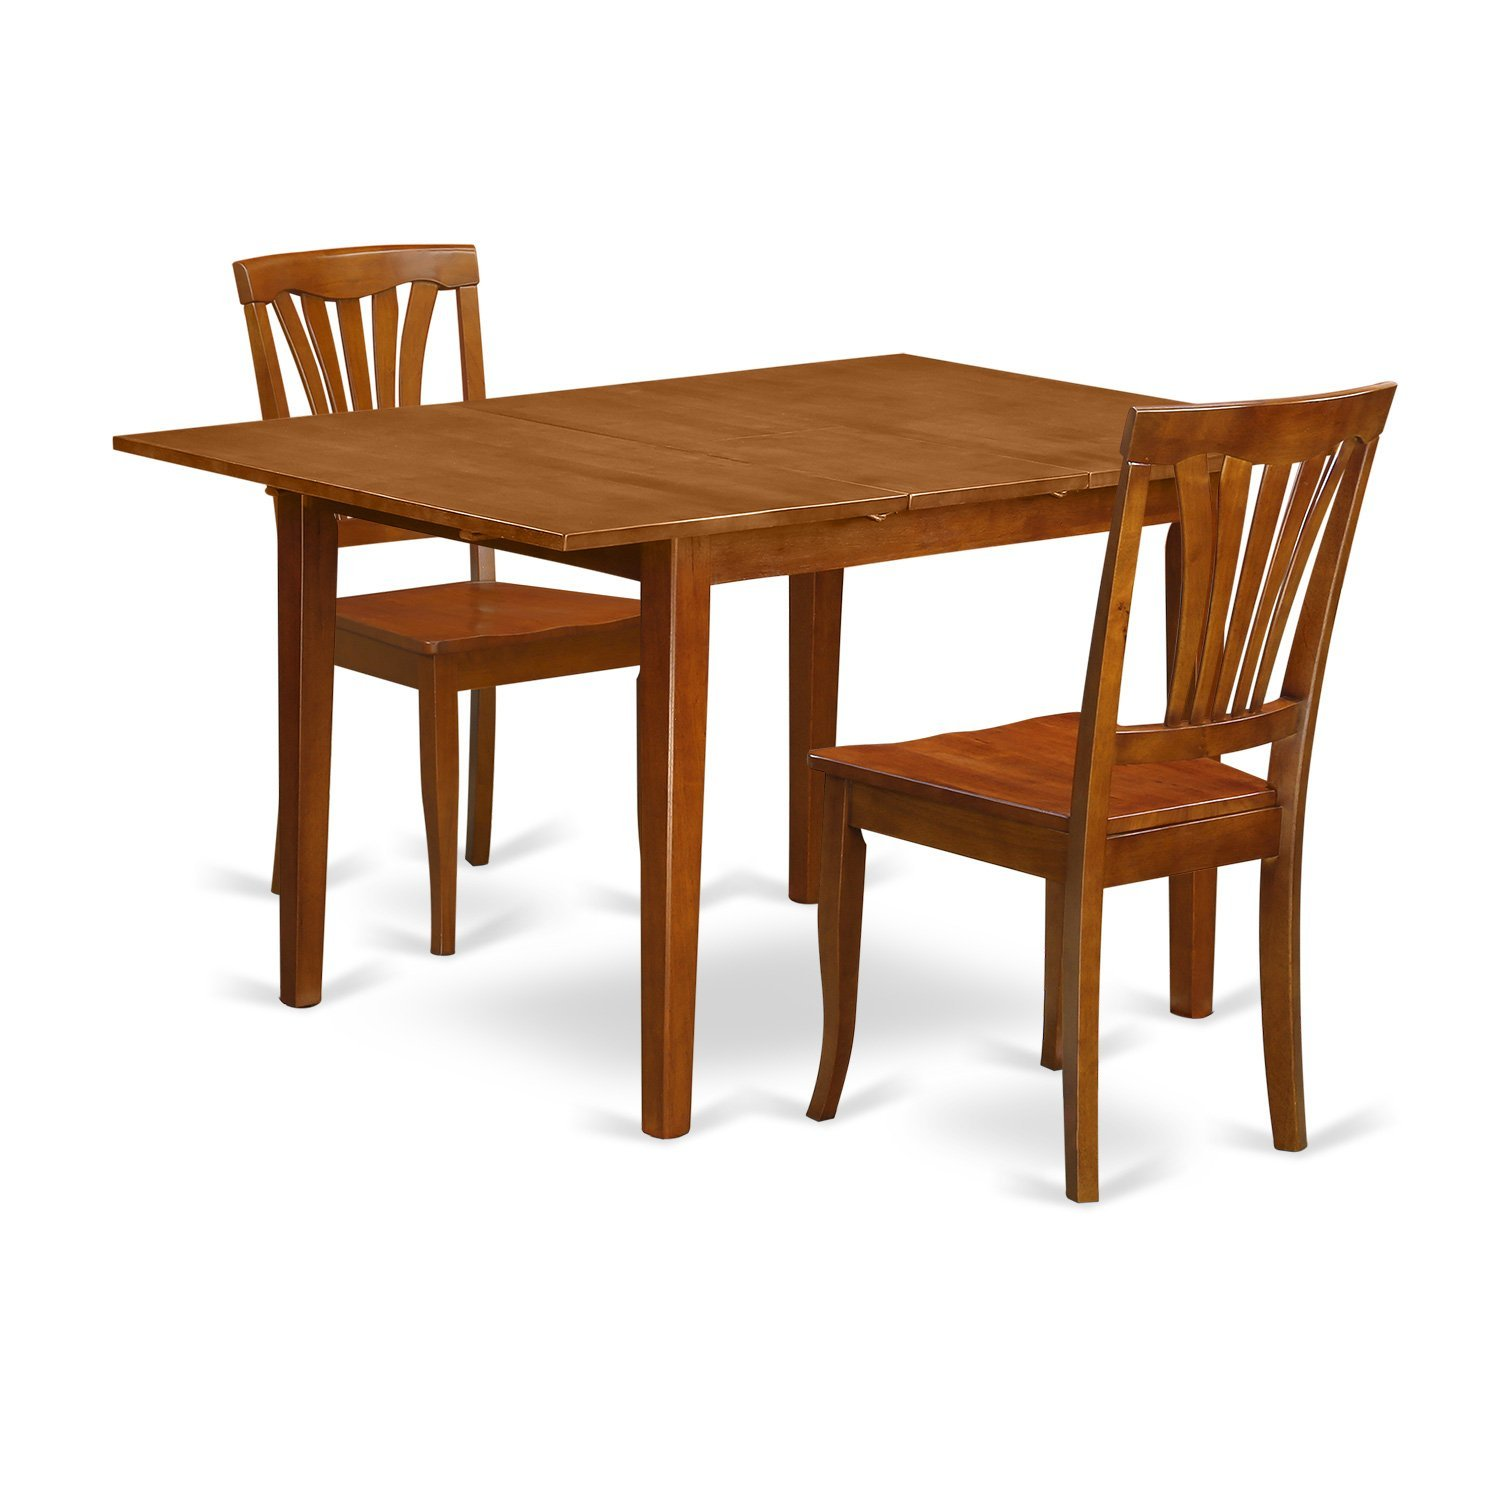 East West Furniture MLAV3-SBR-W 3 Piece Milan Kitchen Table Offering Leaf and 2 Solid Wood Kitchen Chairs in Saddle Brown